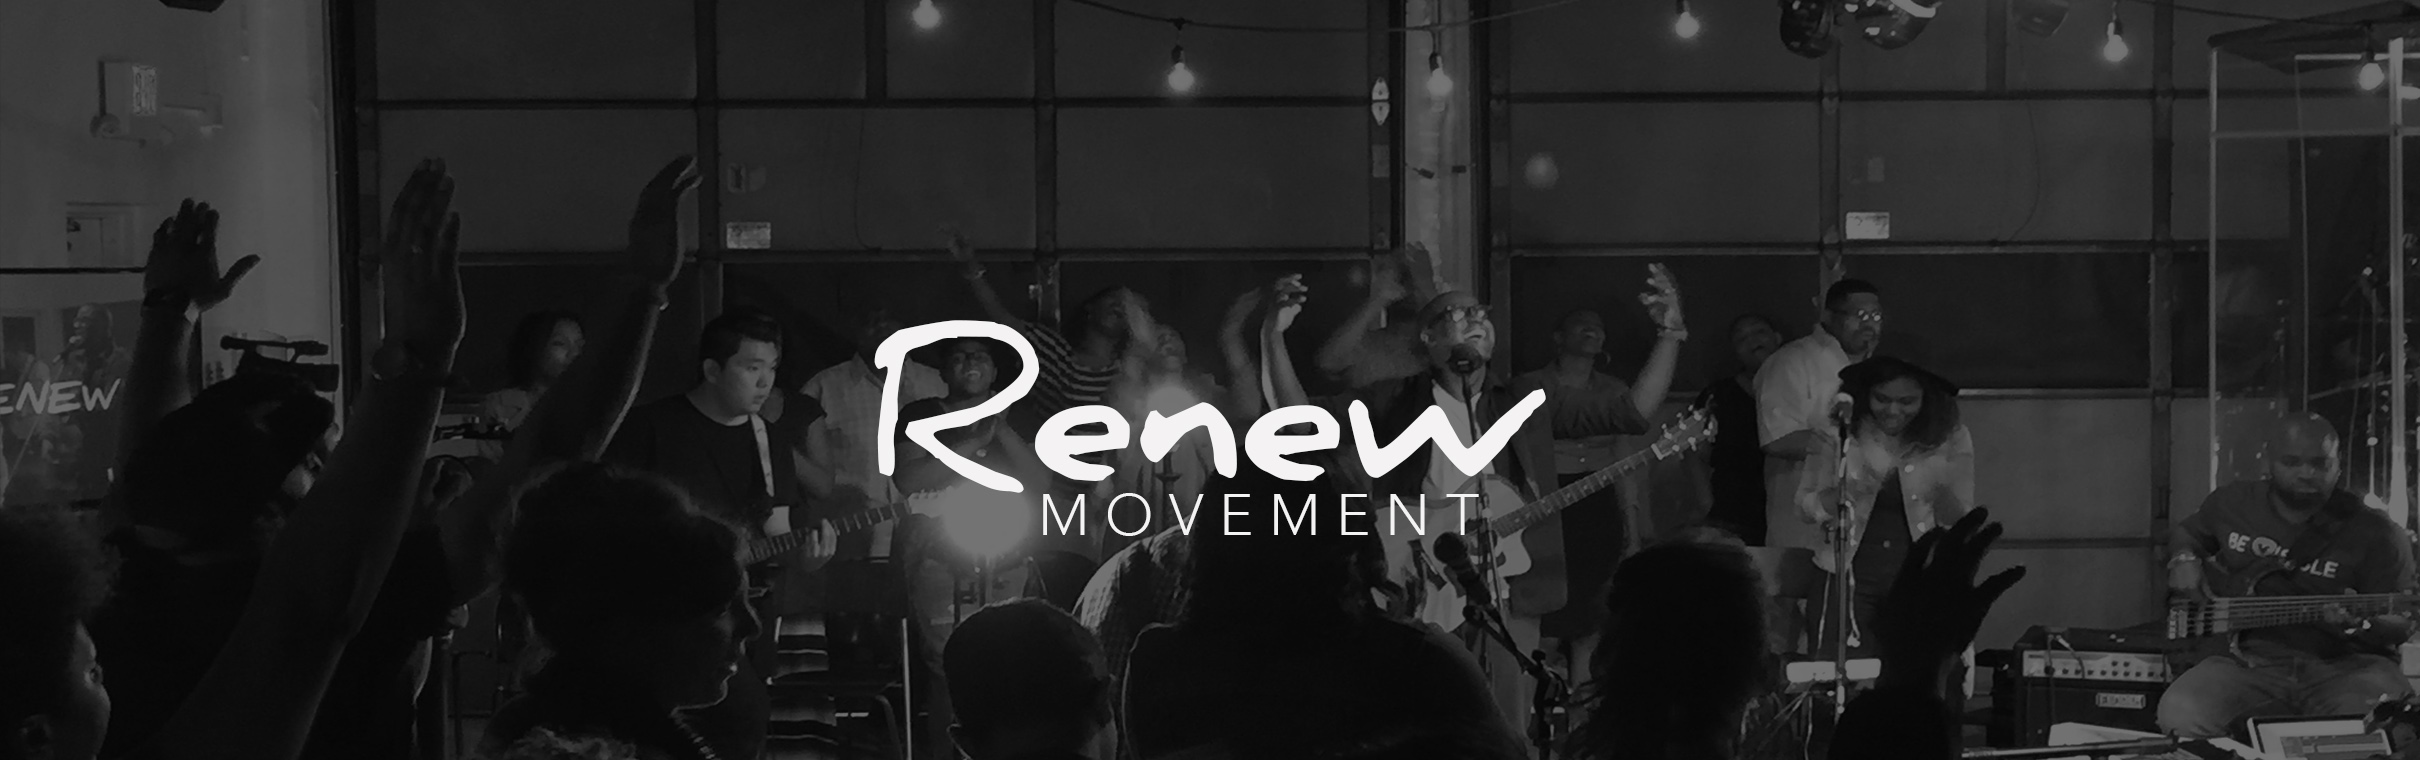 Renew Movement